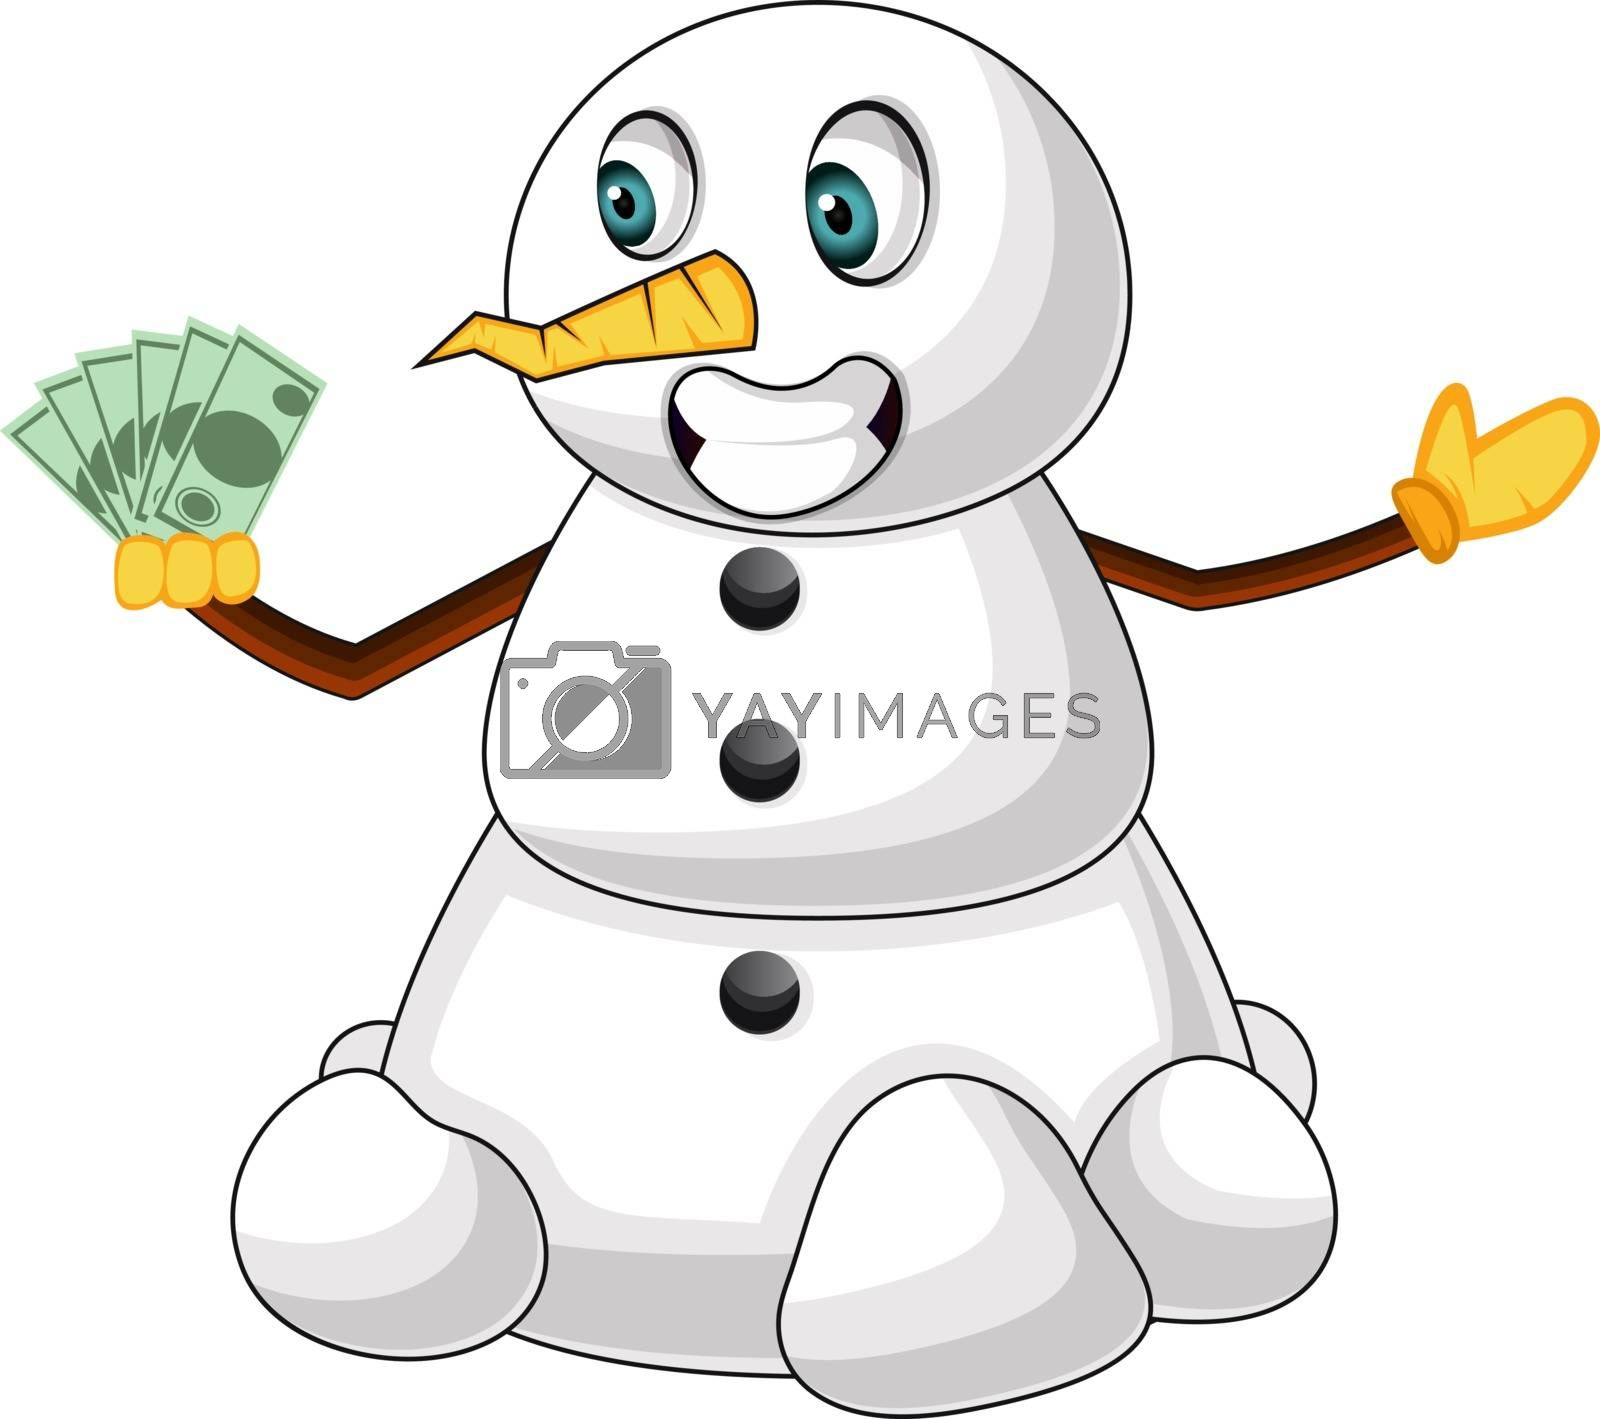 Royalty free image of Rich snowman illustration vector on white background by Morphart